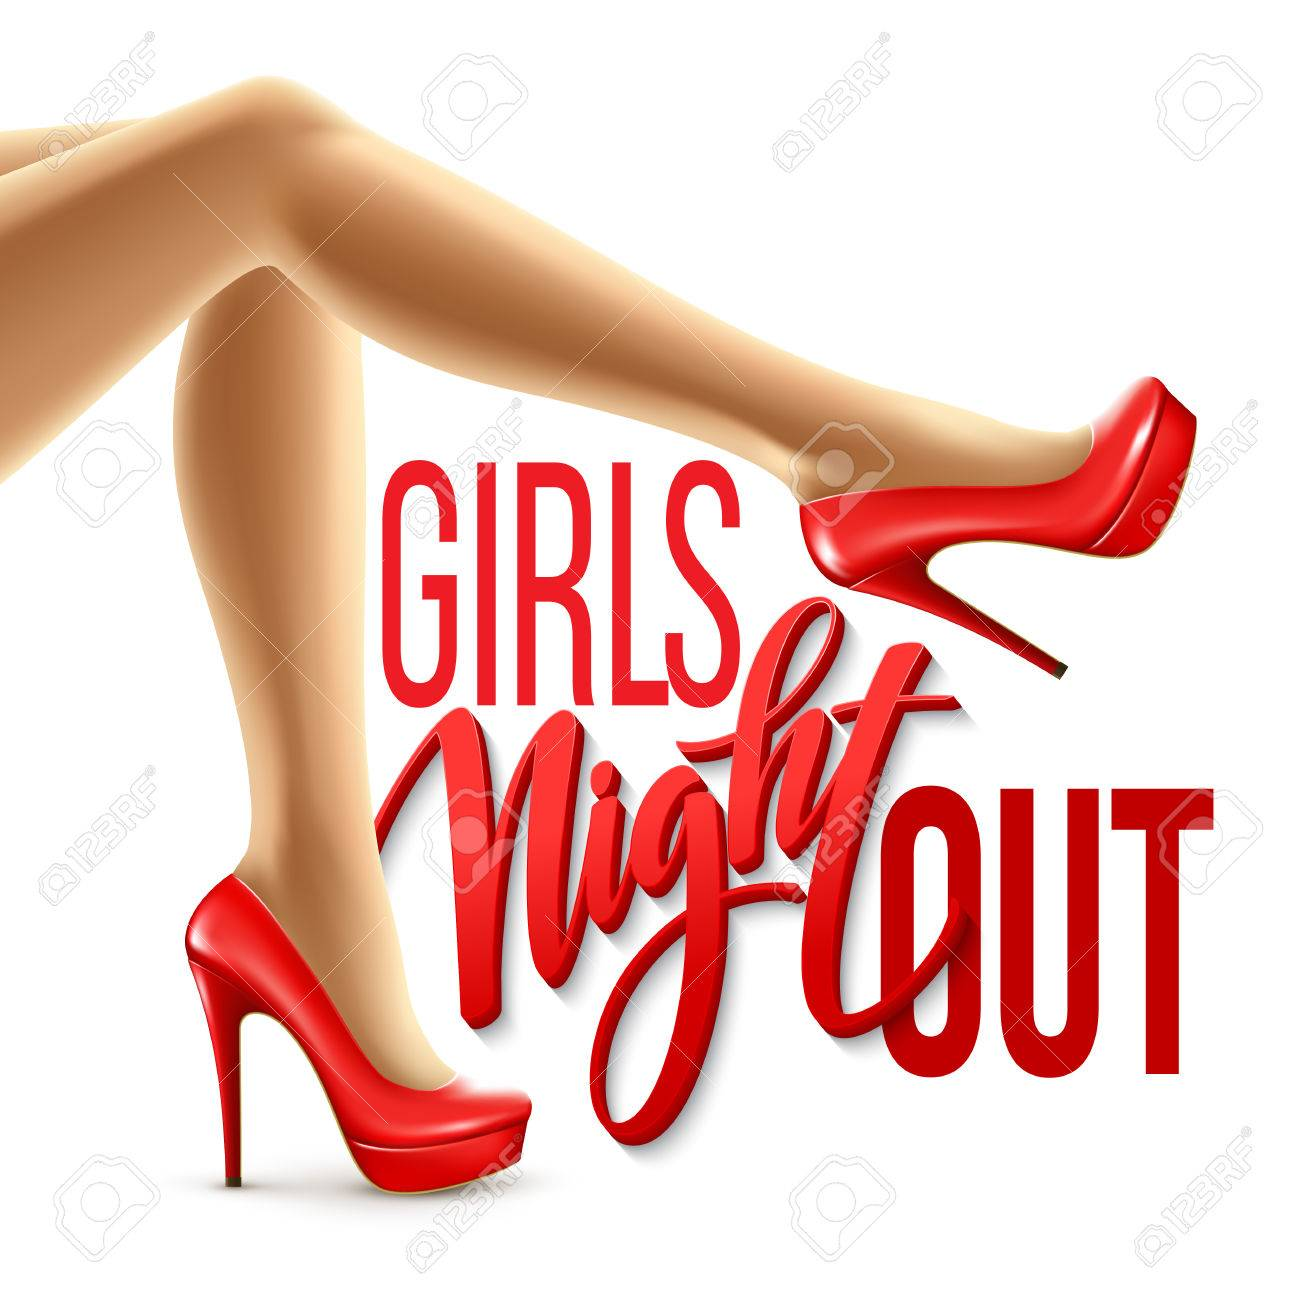 57130687-girl-night-out-party-design-vector-illustration-eps10.jpg